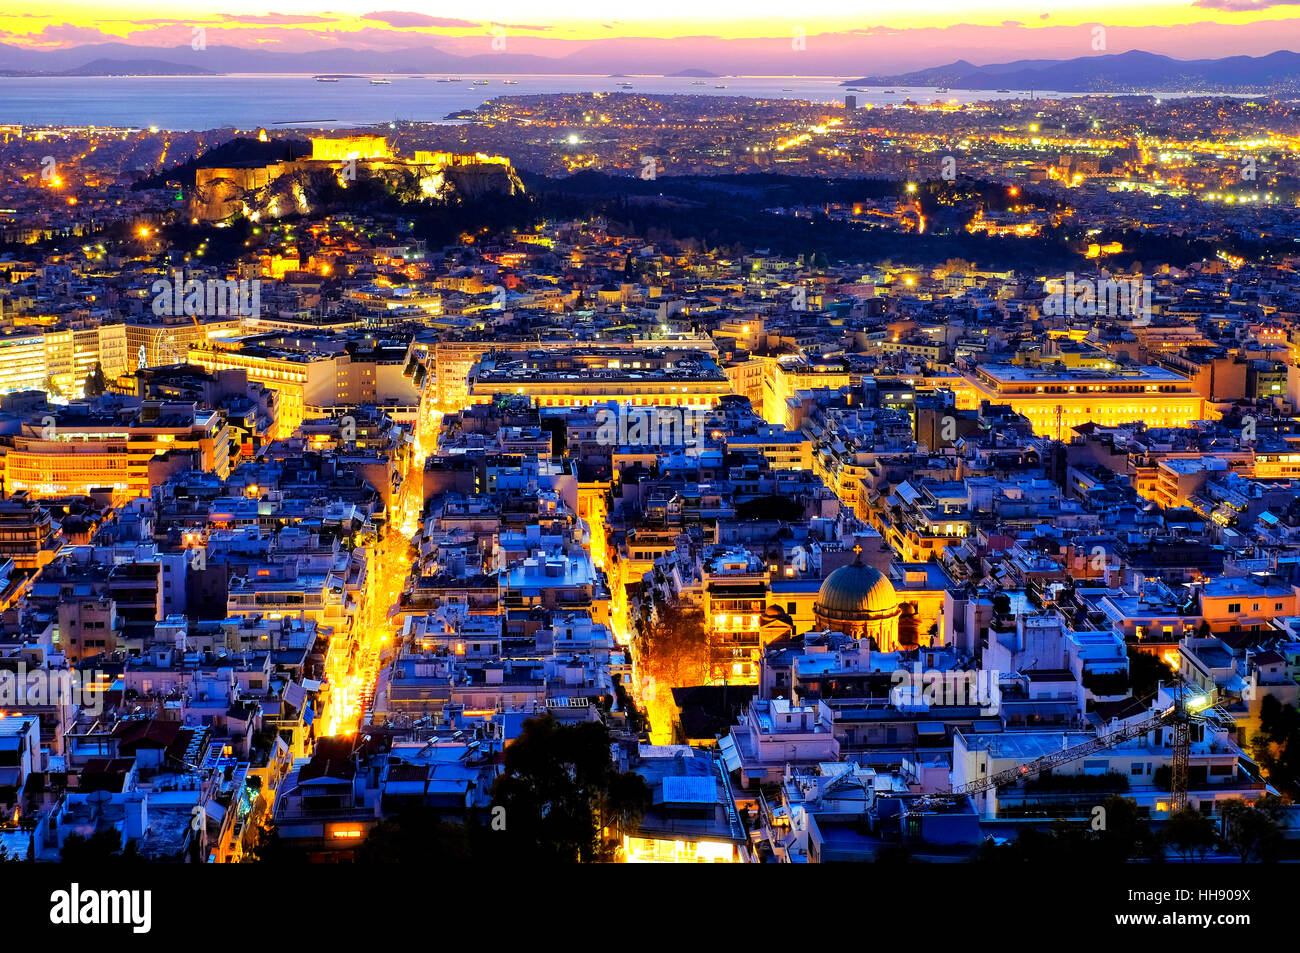 View of the city of Athens form Mount Lycabettus, Athens, Greece - Stock Image